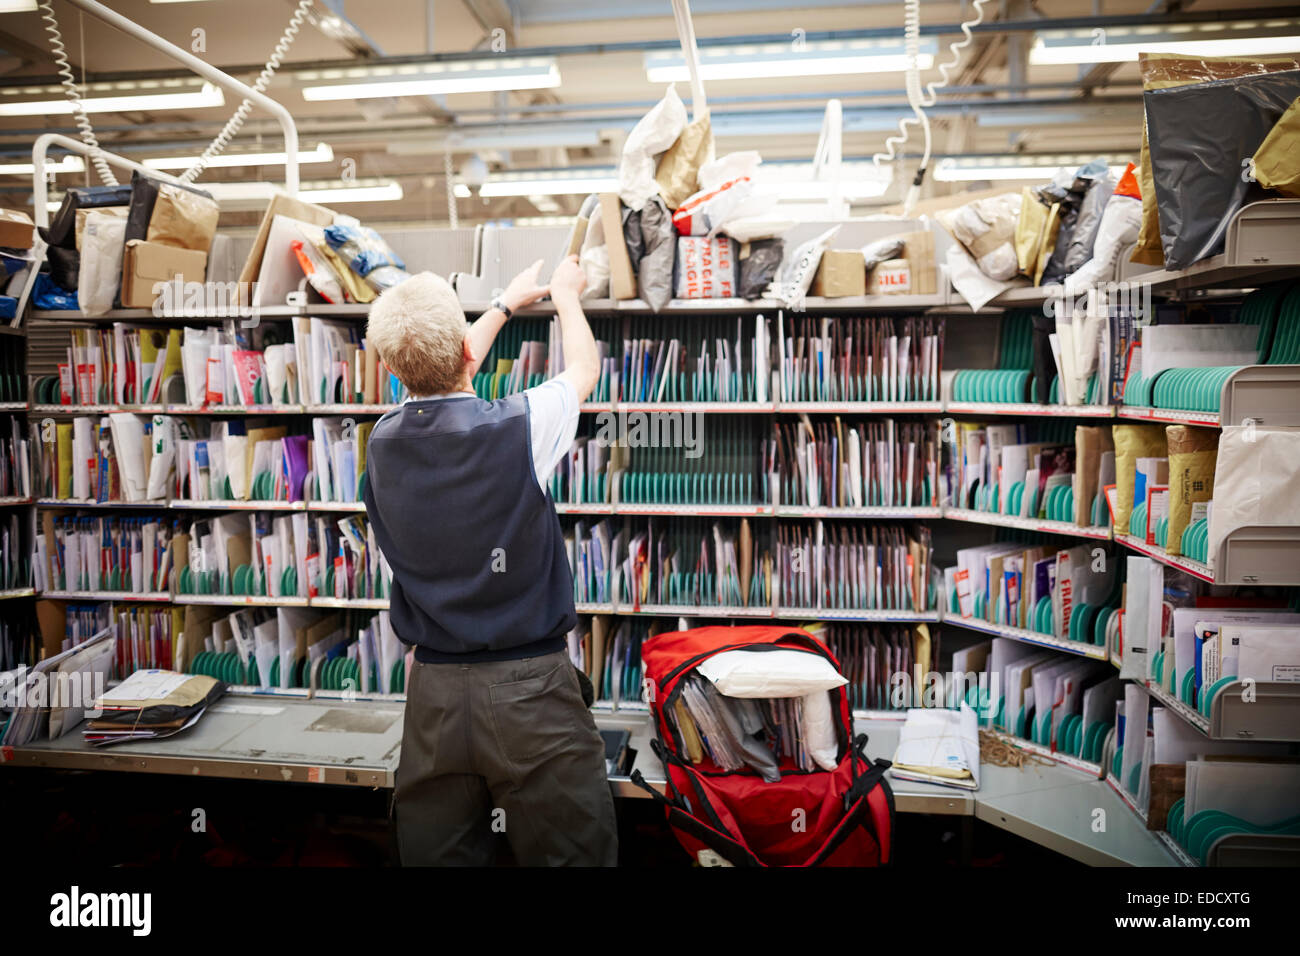 Royal Mail Manchester South delivery office workers sorting the mail by hand - Stock Image